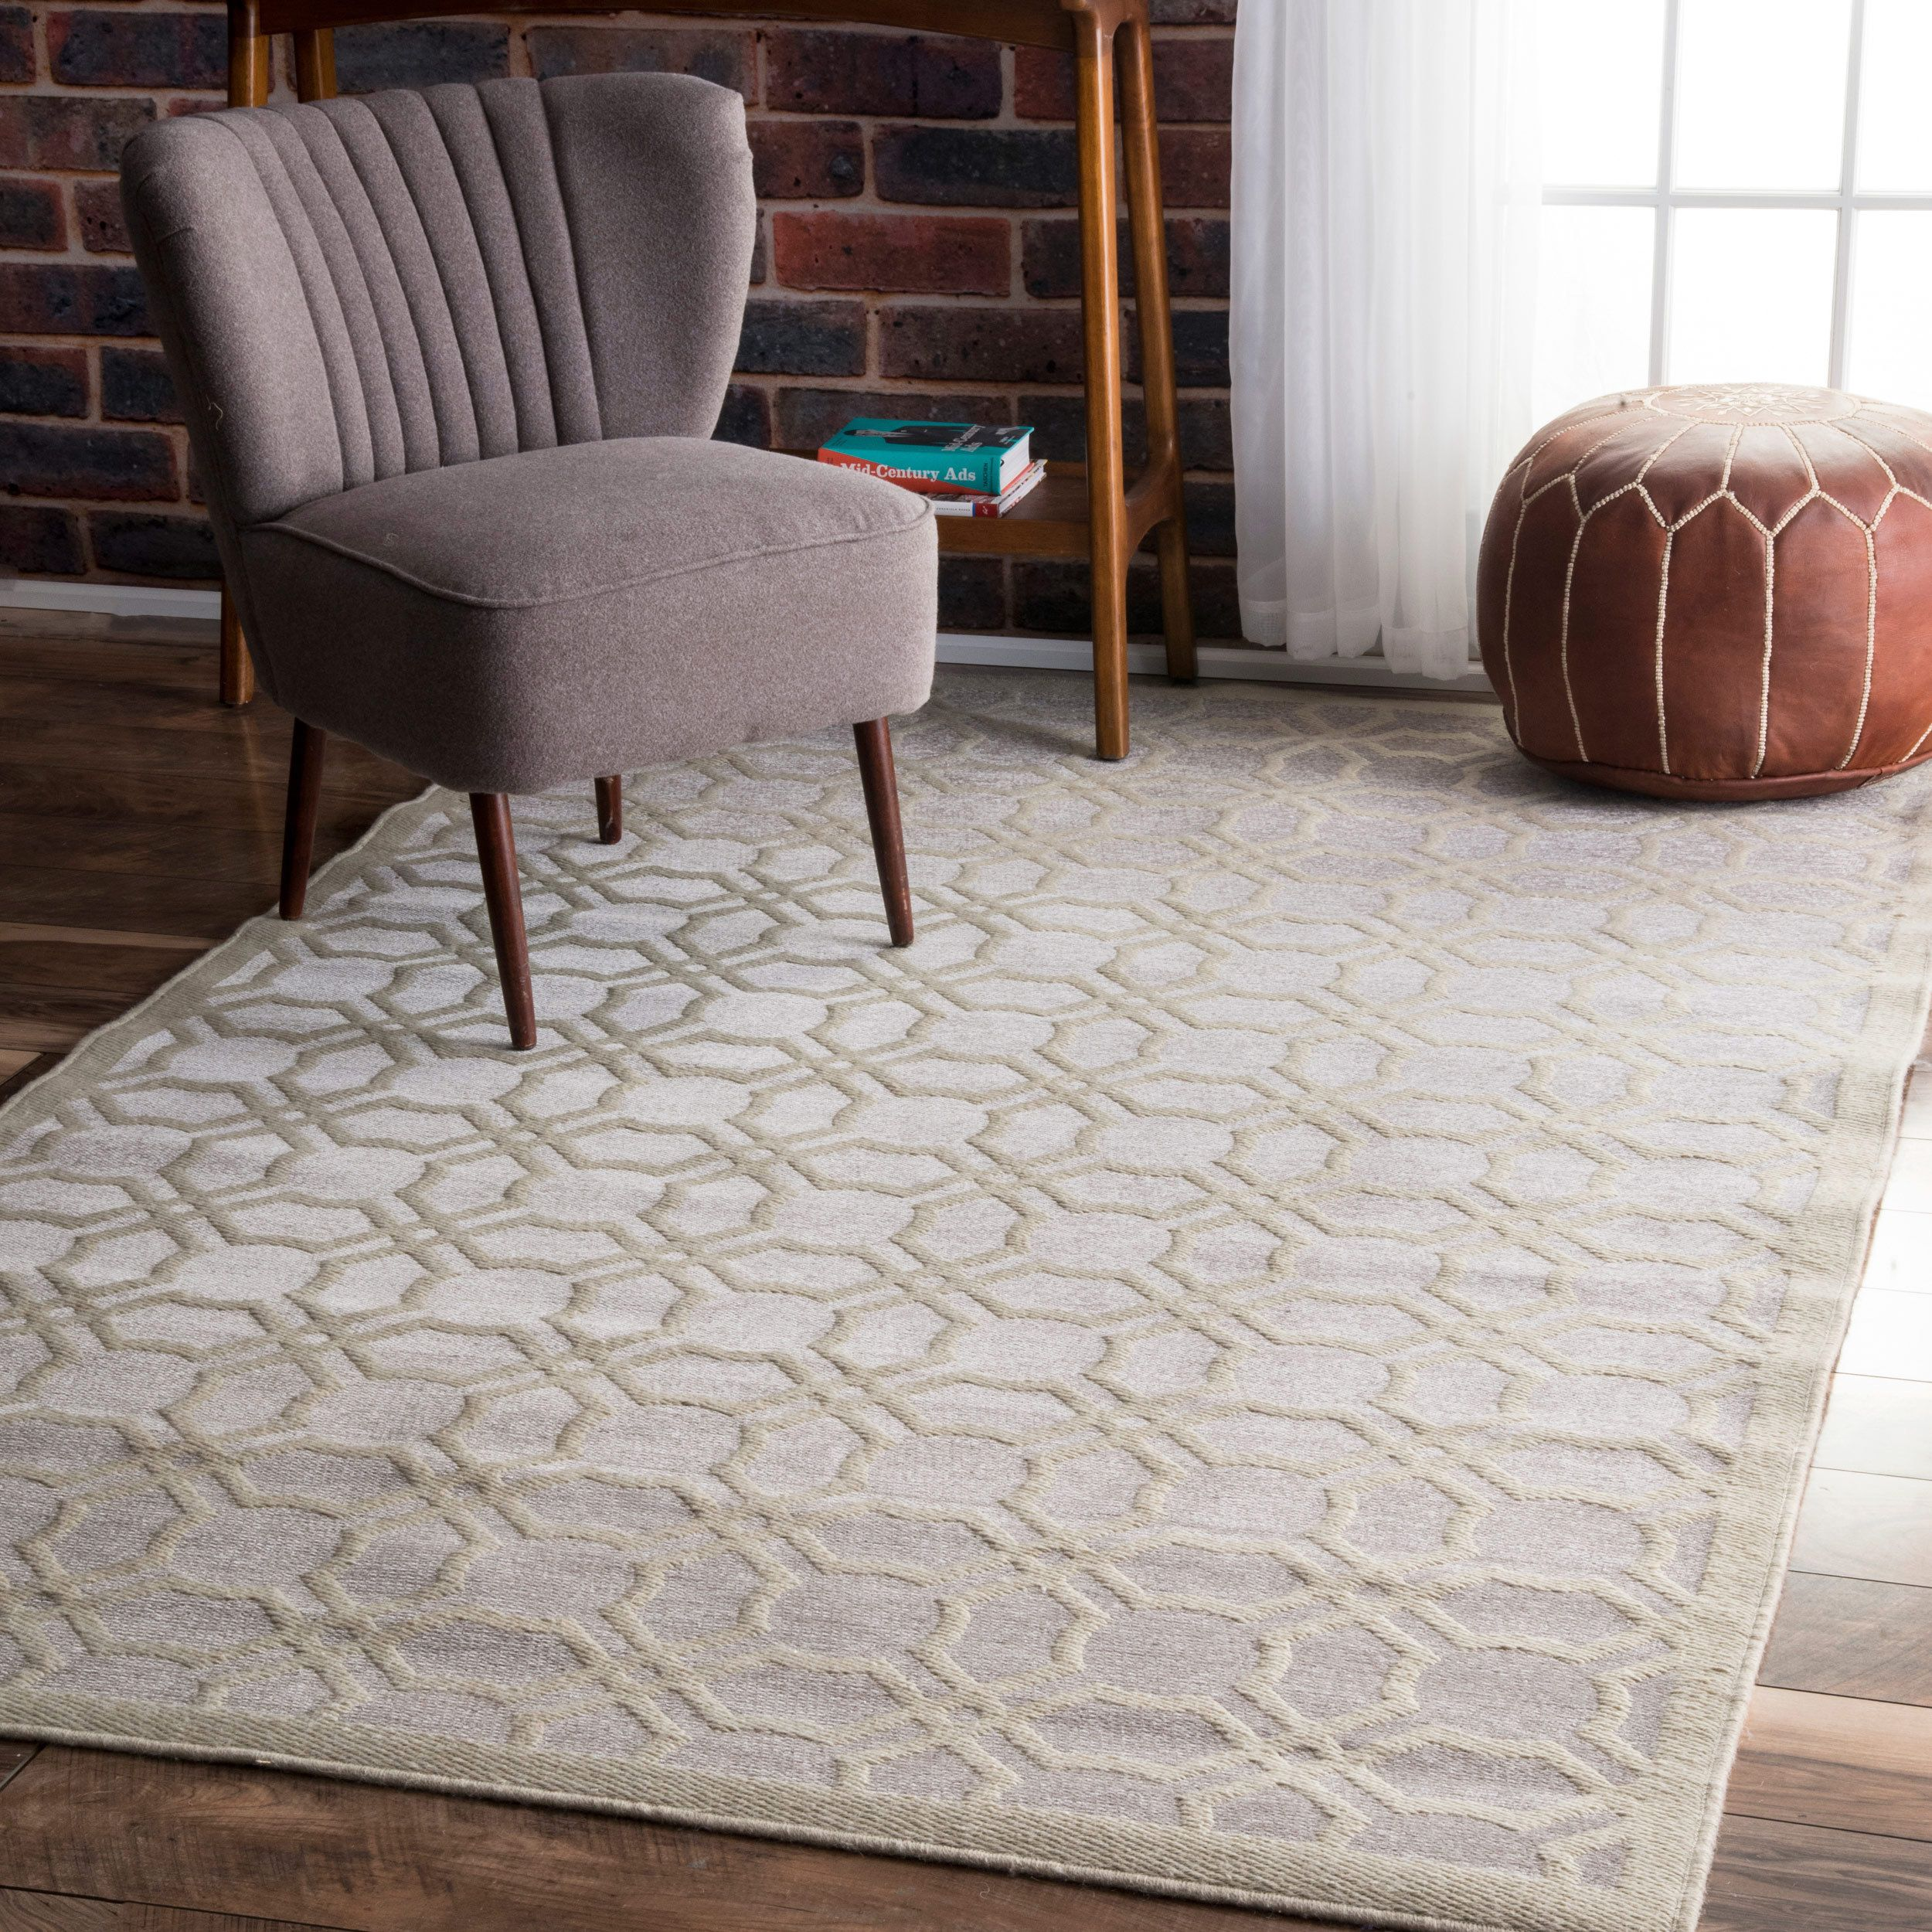 mainstays distressed zag a ip bag white walmart cinder gray rug area in large zig com